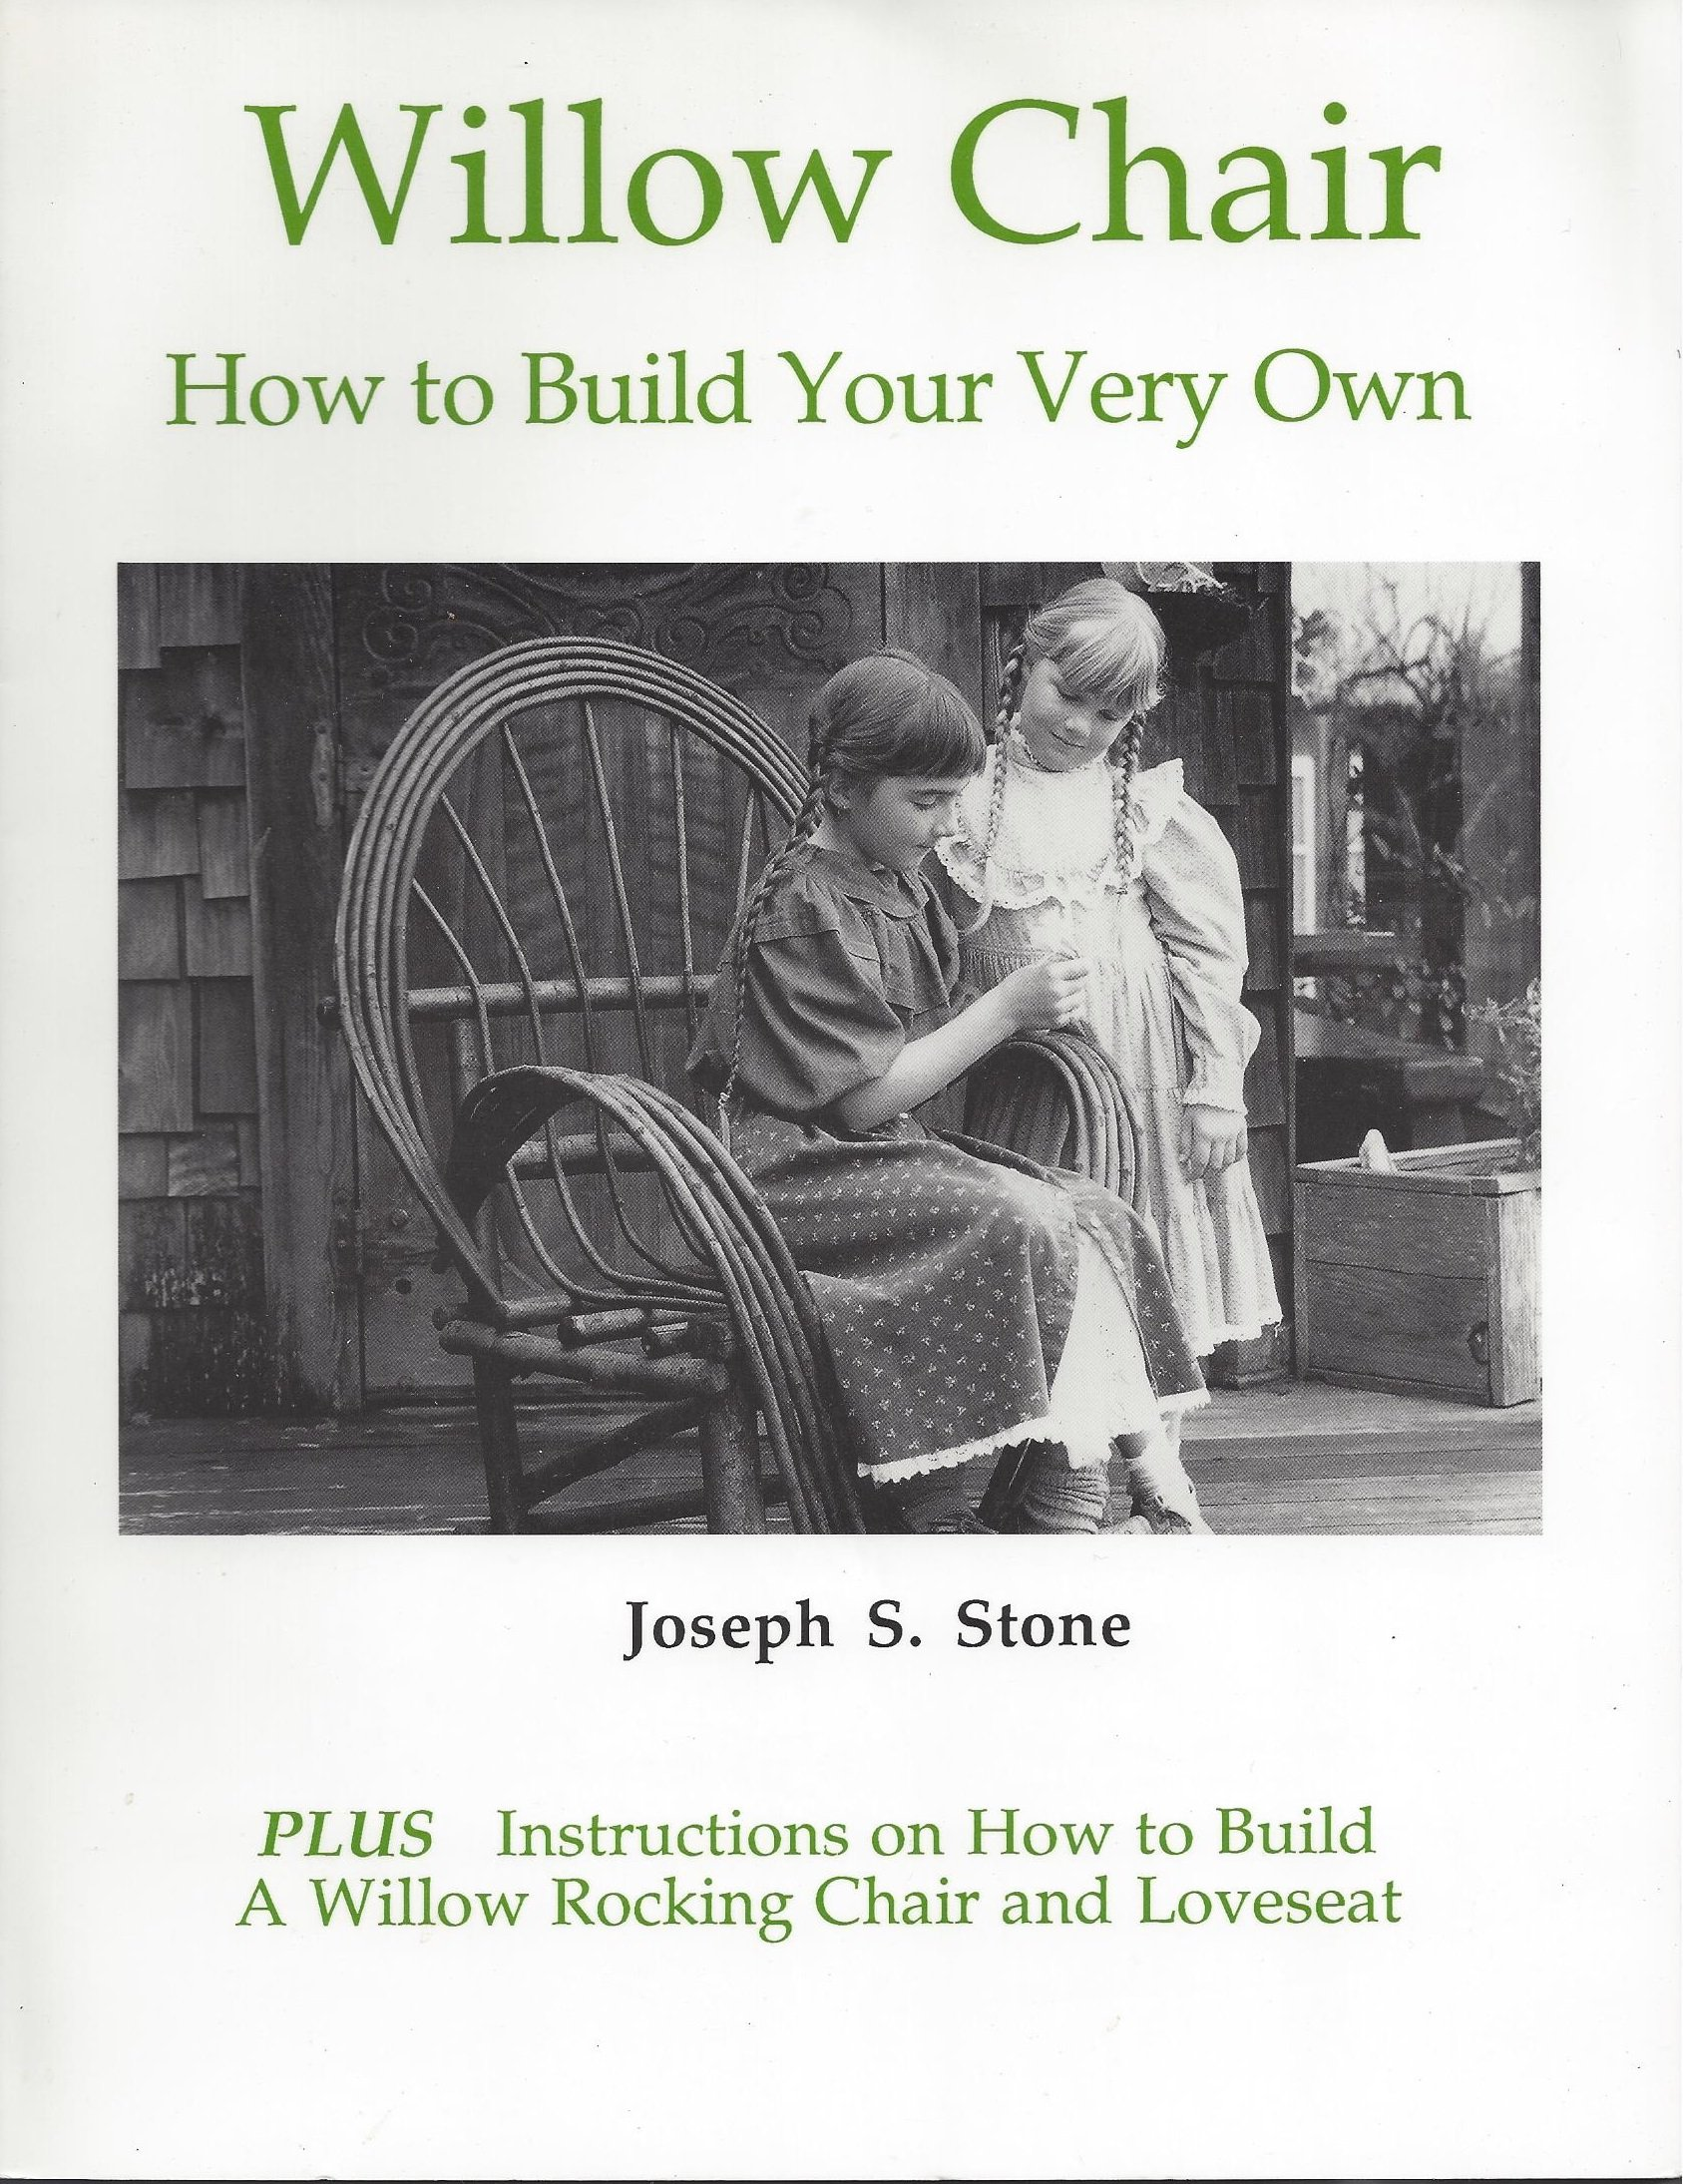 Willow Chair: How to Build Your Very Own